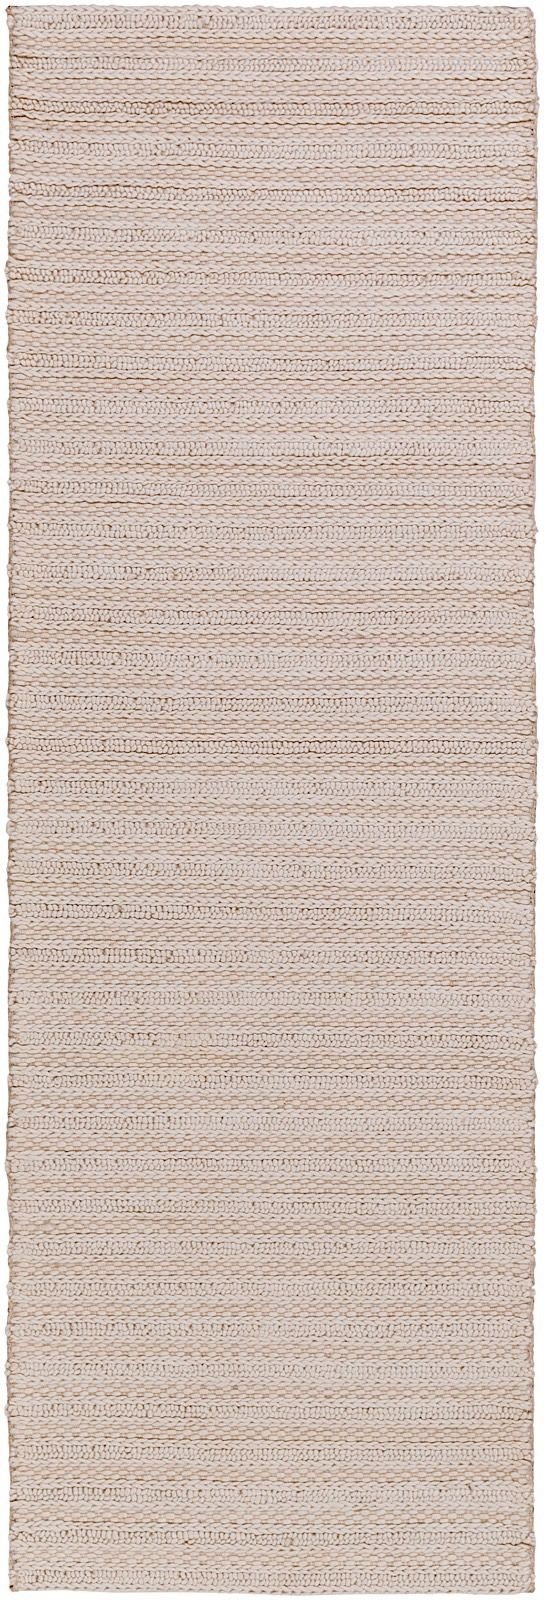 surya kindred contemporary area rug collection